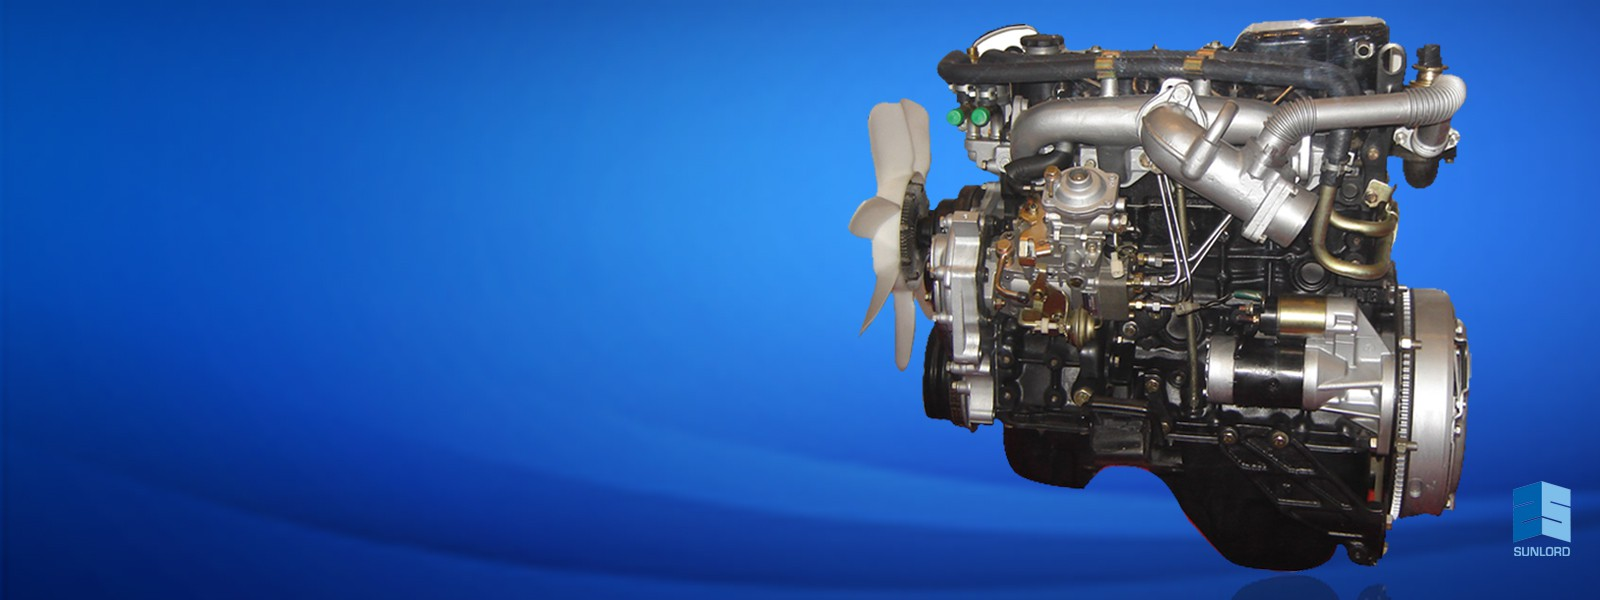 Better parts,better a diesel engine  View More